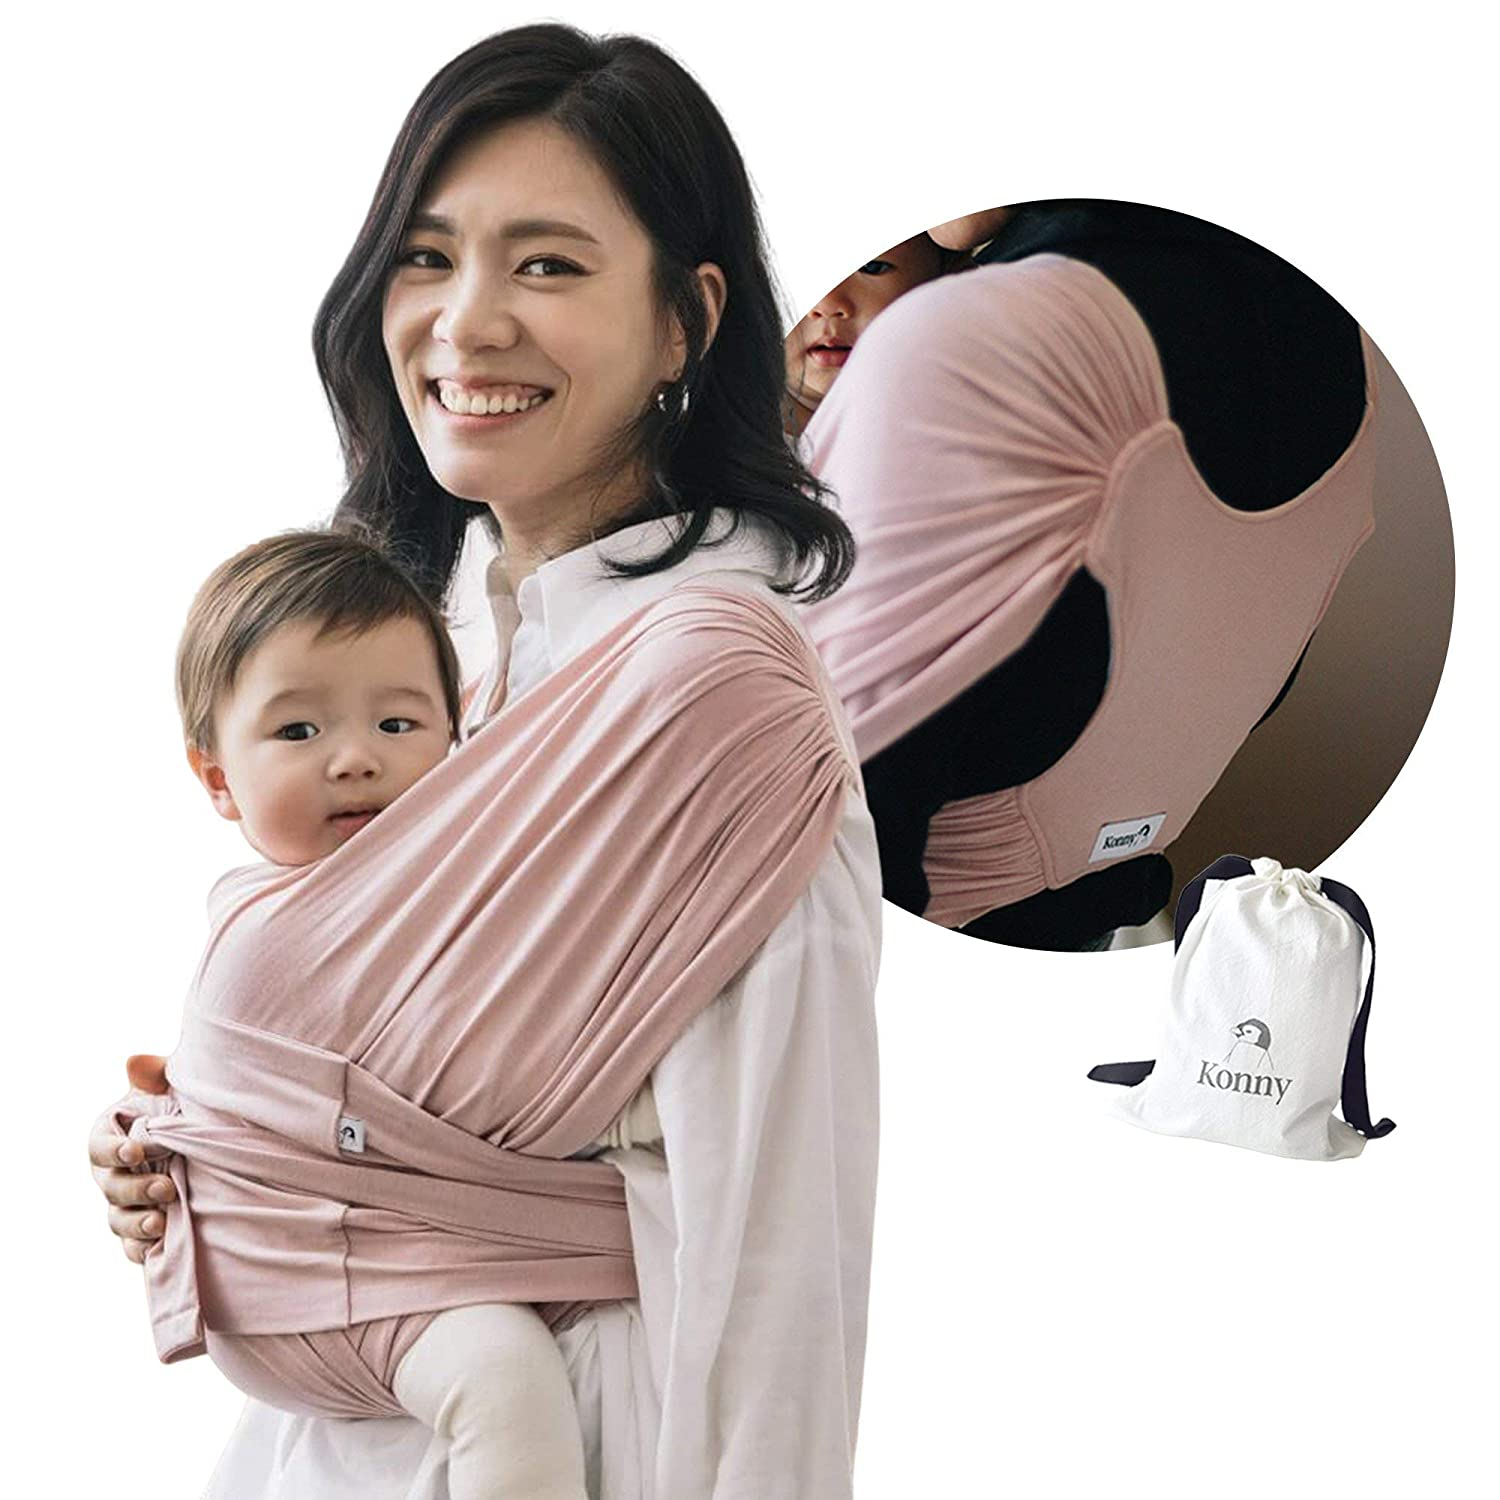 Konny Baby Carrier | Ultra-Lightweight, Hassle-Free Baby Wrap Sling | Newborns, Infants to 44 lbs Toddlers | Soft and Breathable Fabric | Sensible Sleep Solution (Pink, M)